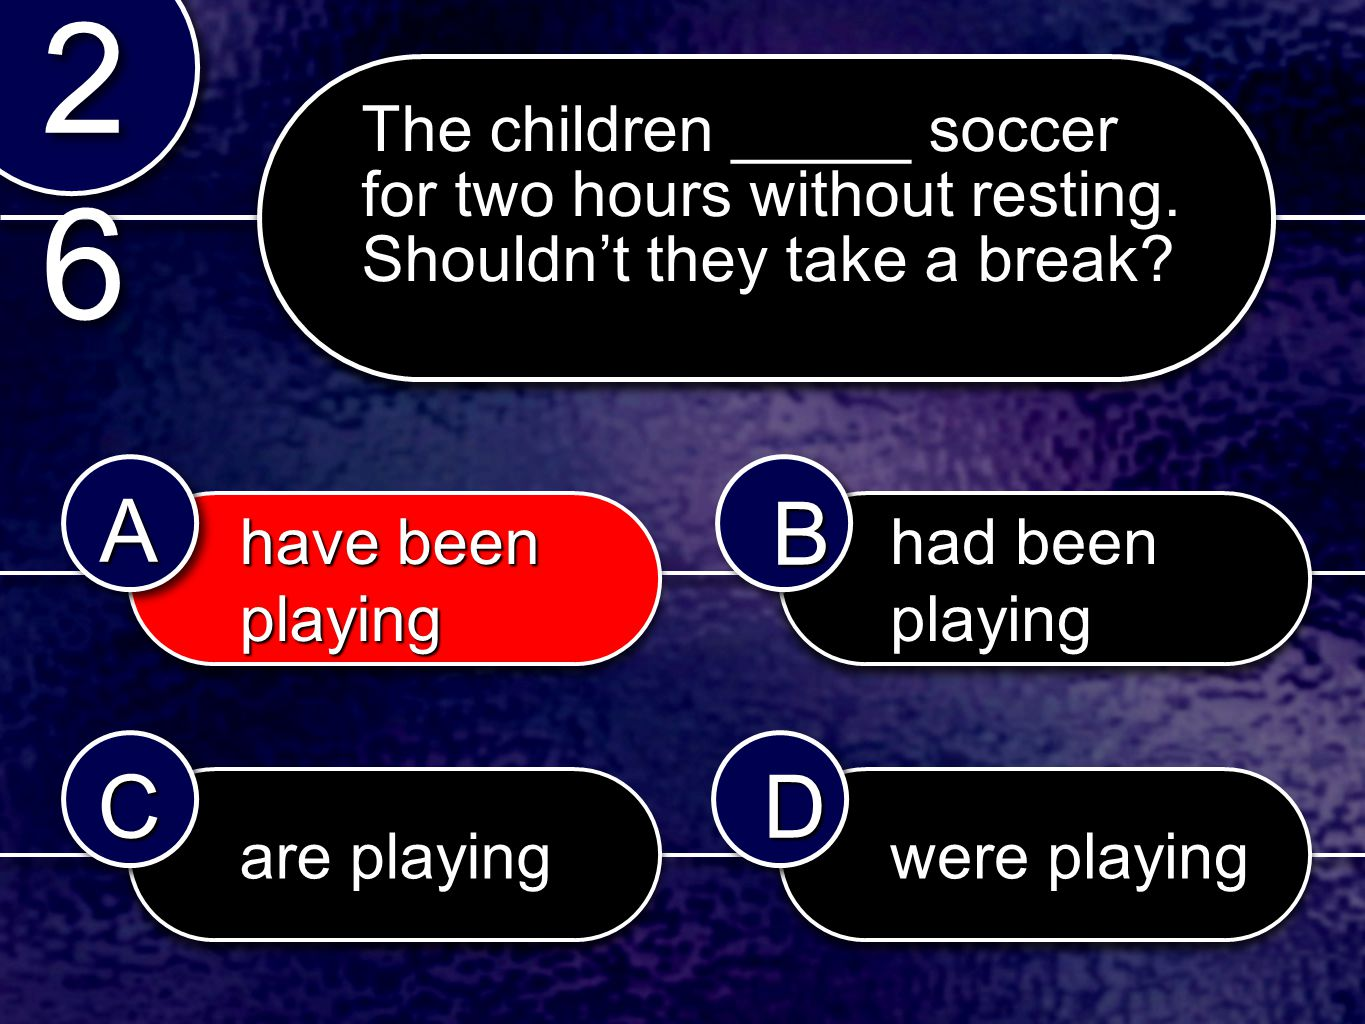 had been playing have been playing have been playing are playing were playing 2626 2626 AABB CCDD The children _____ soccer for two hours without resting.